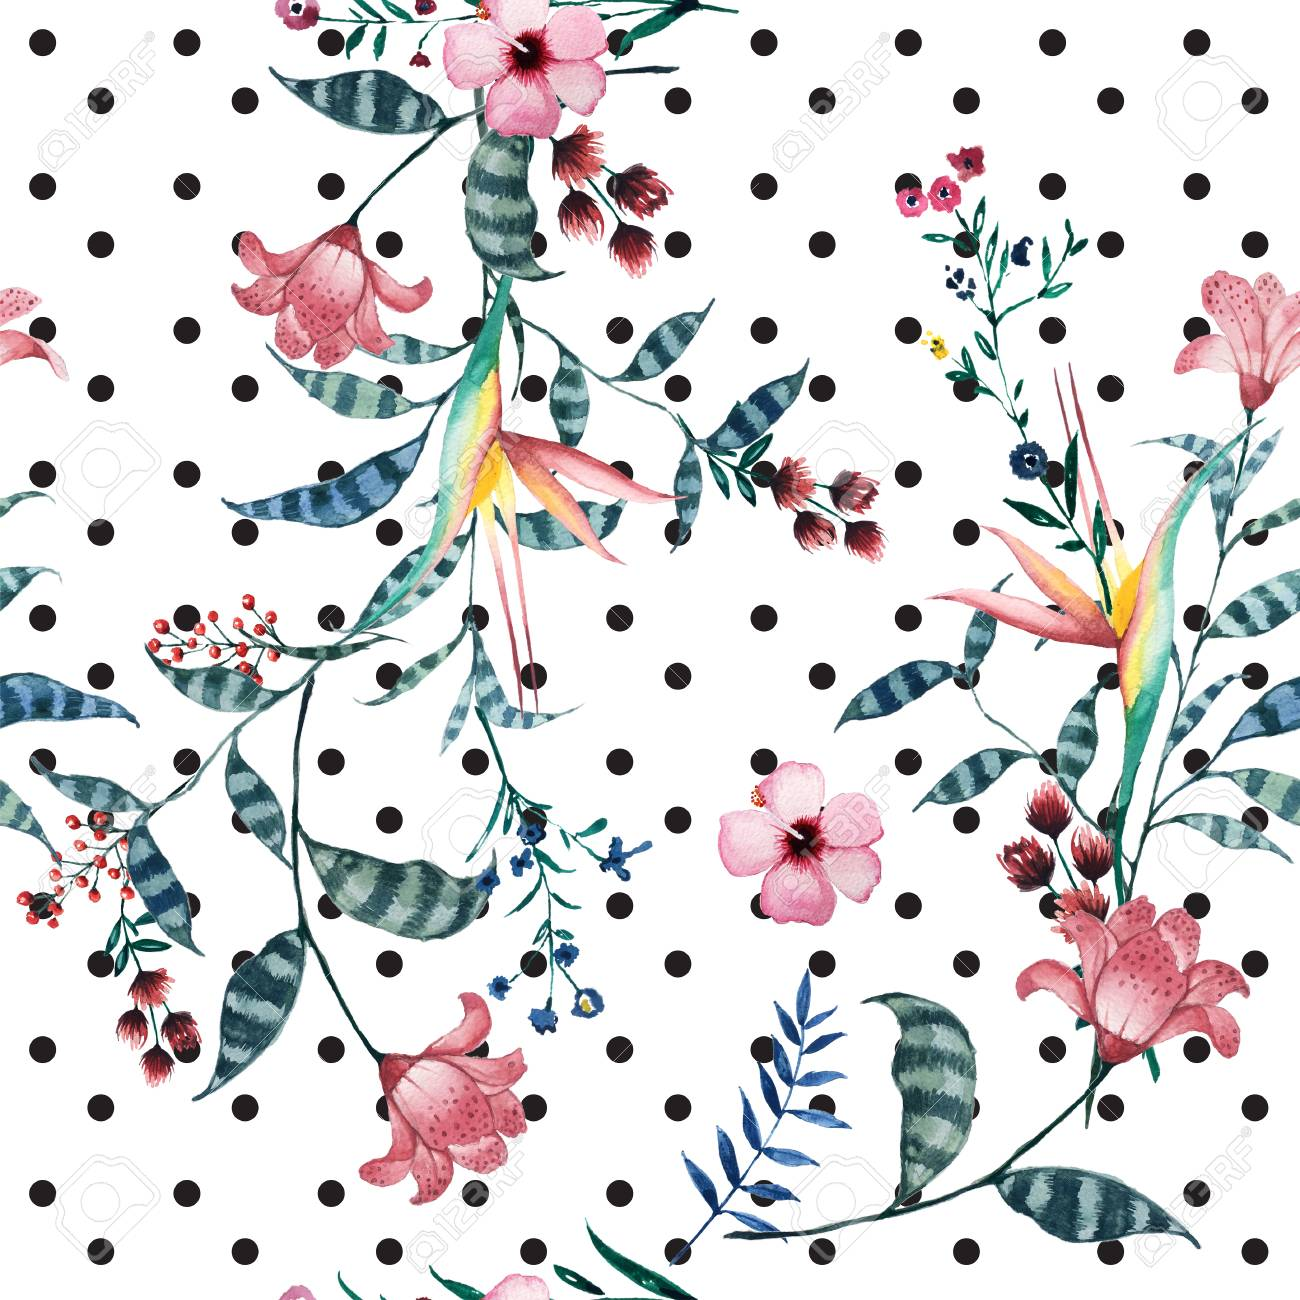 Watercolor Tropical Floral Pattern On Polka Dot Delicate Flower